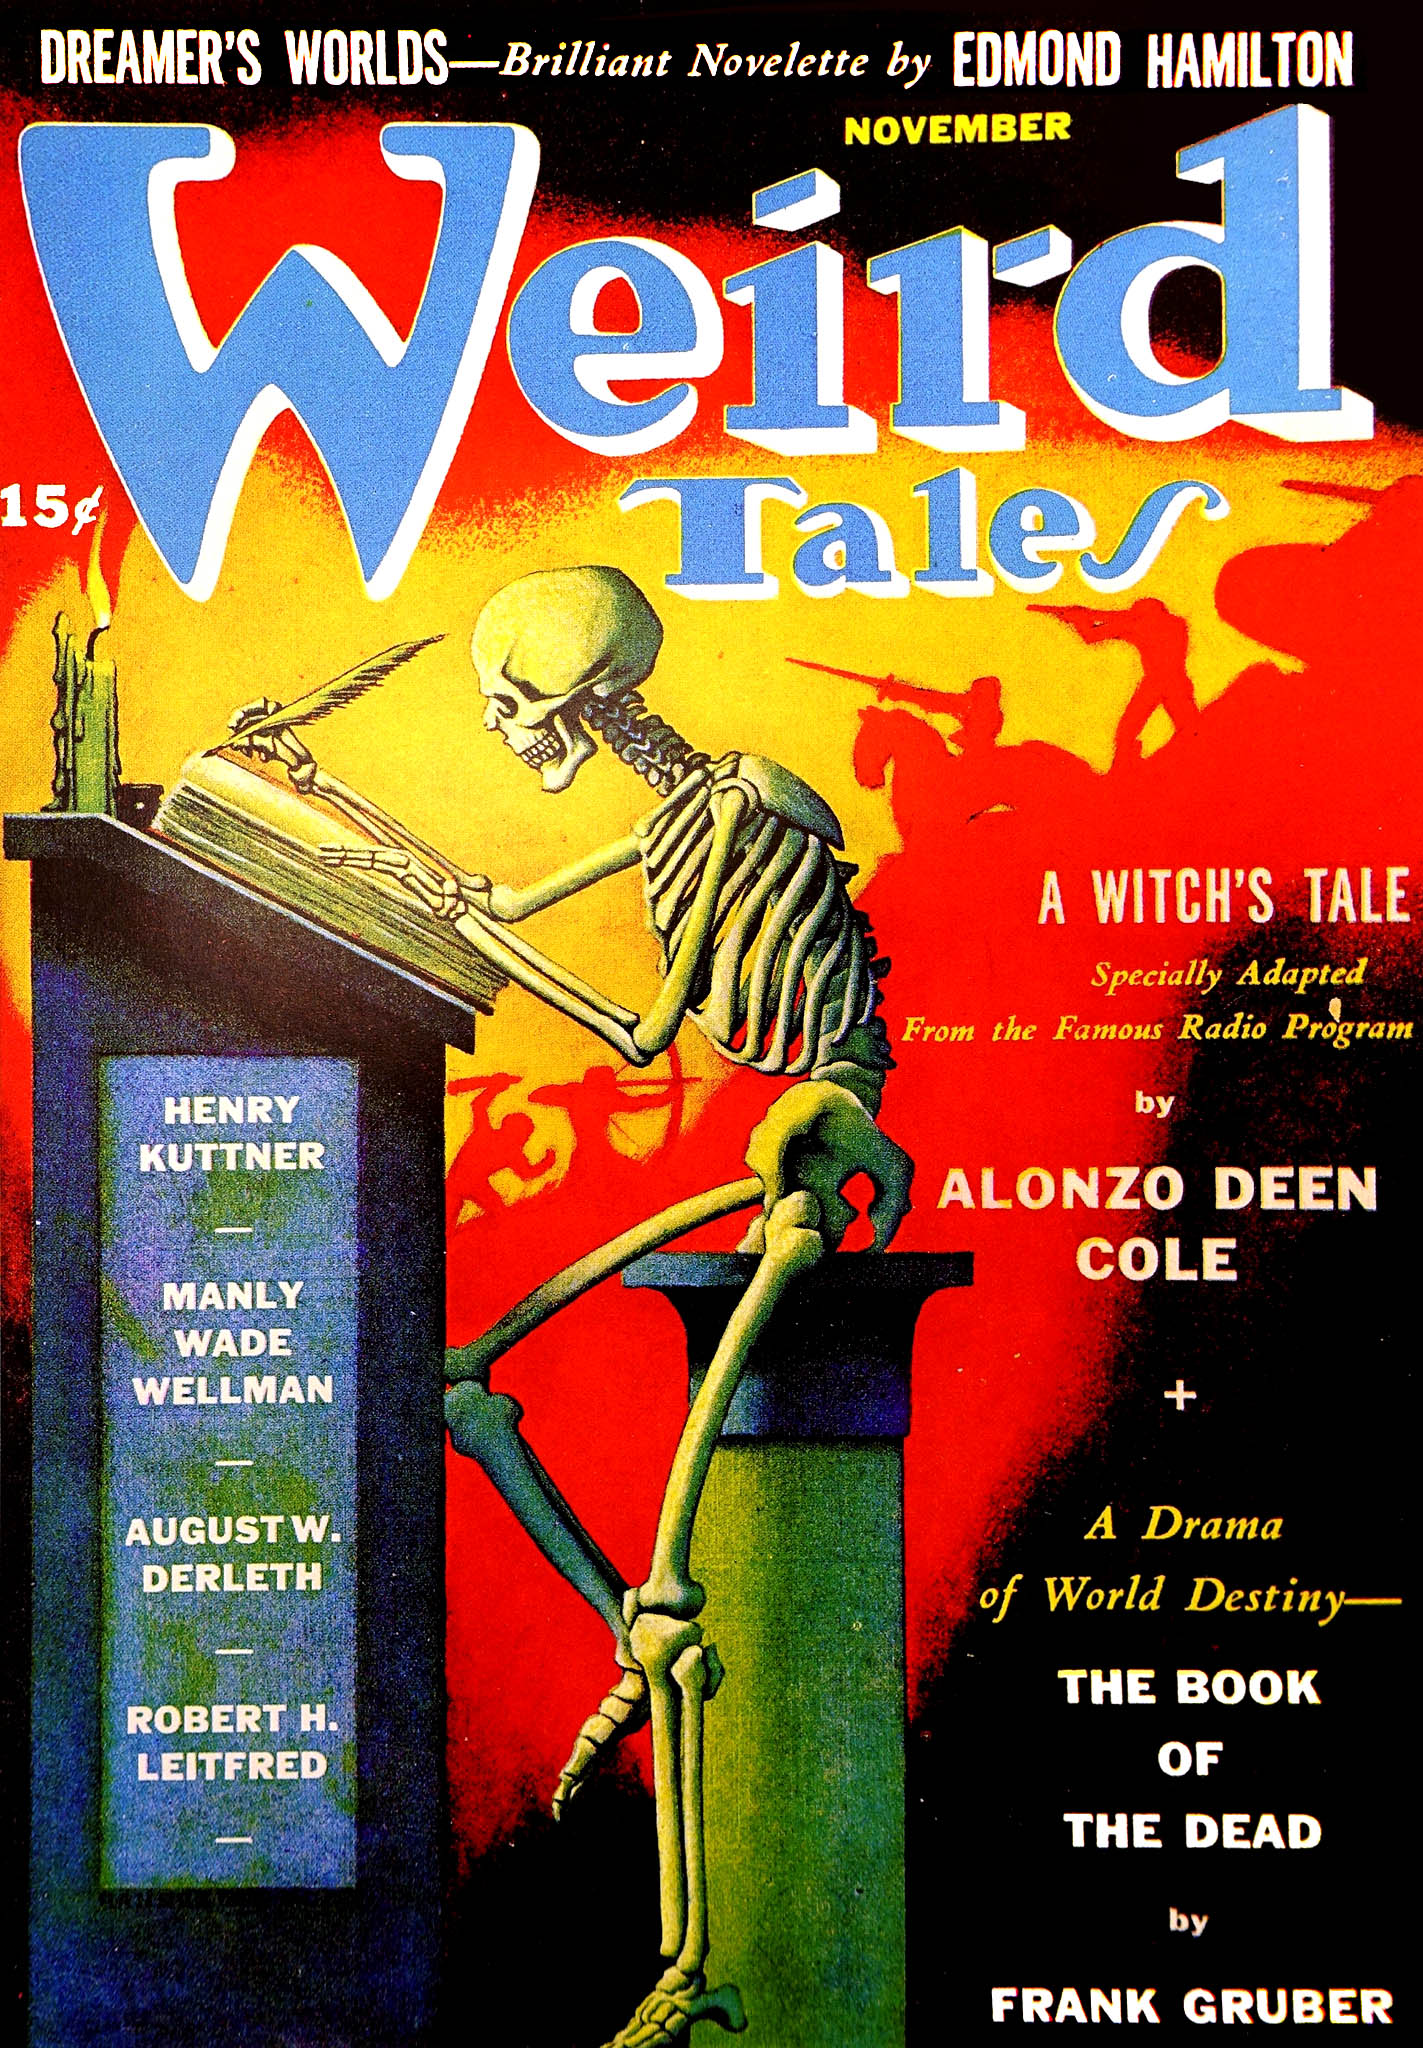 "Painted cover of Weird Tales, dated November. The cover art features a skeleton sitting at a desk, writing in a book with a quill pen. The background shows a medieval battle scene in red-tinted silhouette. The captions read: (above the title) ""DREAMER'S WORLDS—Brilliant Novelette by EDMOND HAMILTON"" and (below the title) ""50c; HENRY KUTTNER; MANLY WADE WELLMAN; AUGUST W. DERLETH; ROBERT H. LEITFRED; A WITCH'S TALE — Specially Adapted From the Famous Radio Program by ALONZO DEEN COLE; A Drama of World Destiny — THE BOOK THE DEAD by FRANK GRUBER."""